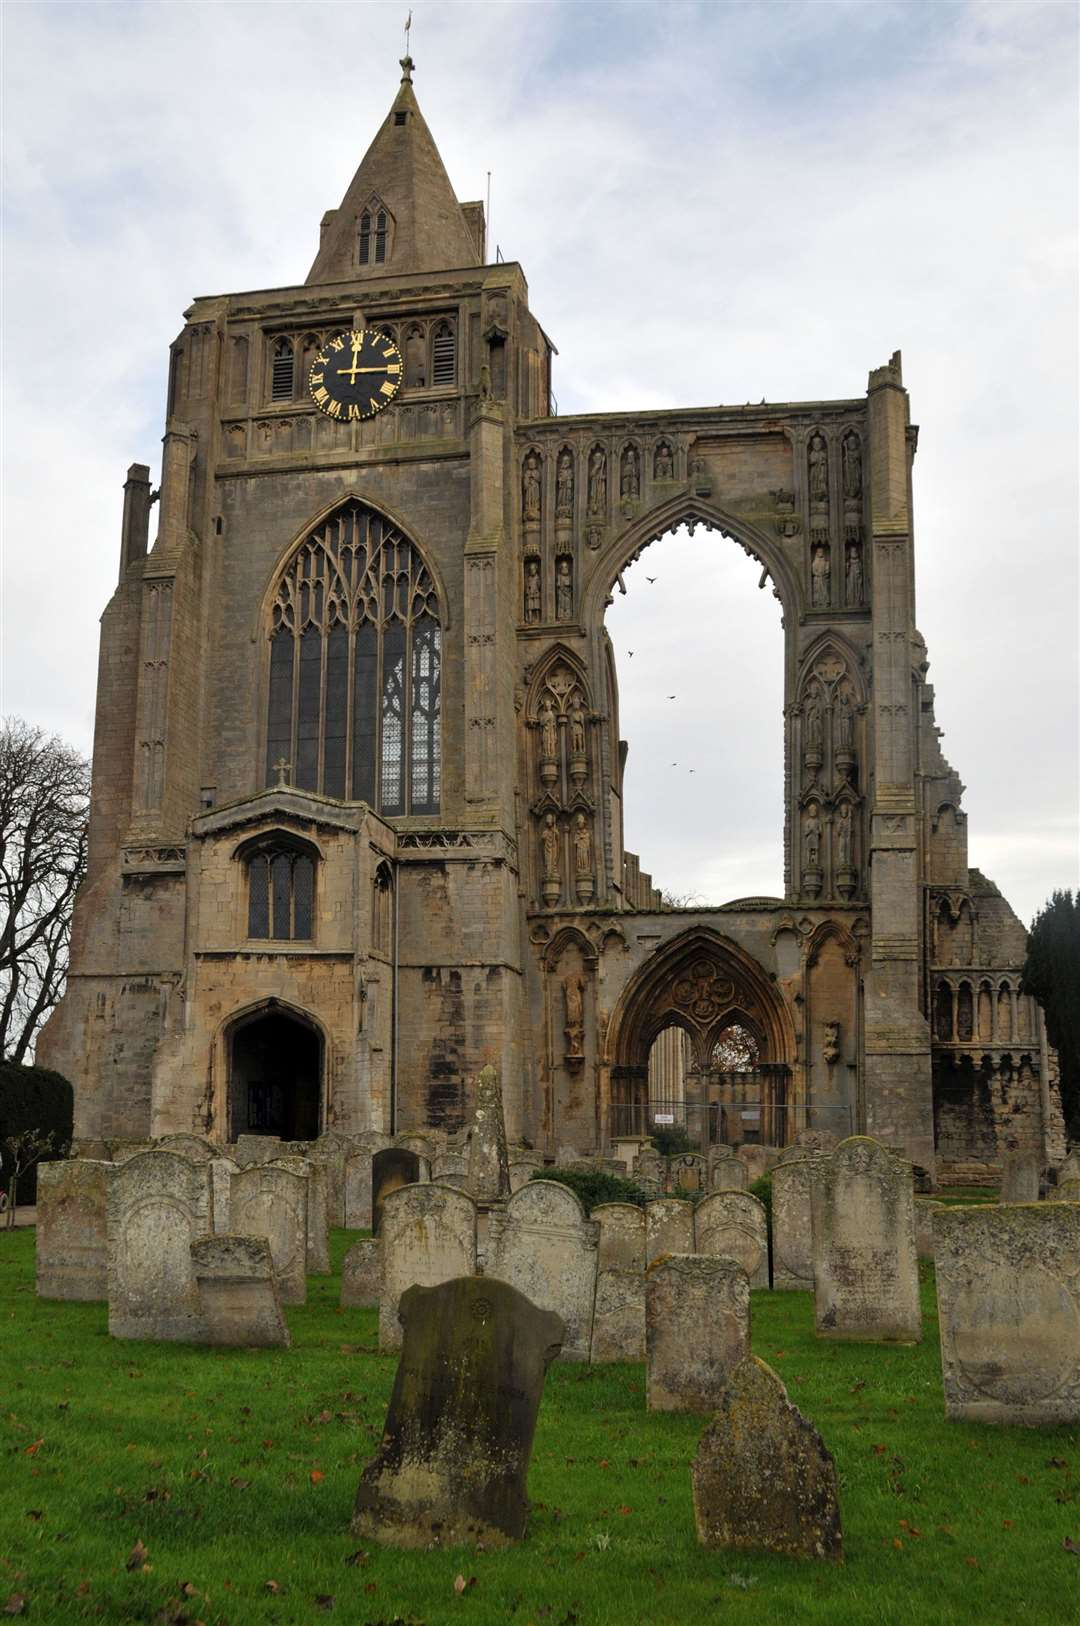 Crowland Abbey suffered nearly £132,000 worth of damage when seven of the windows at the grade I-listed building were smashed during disorder in May 2018.